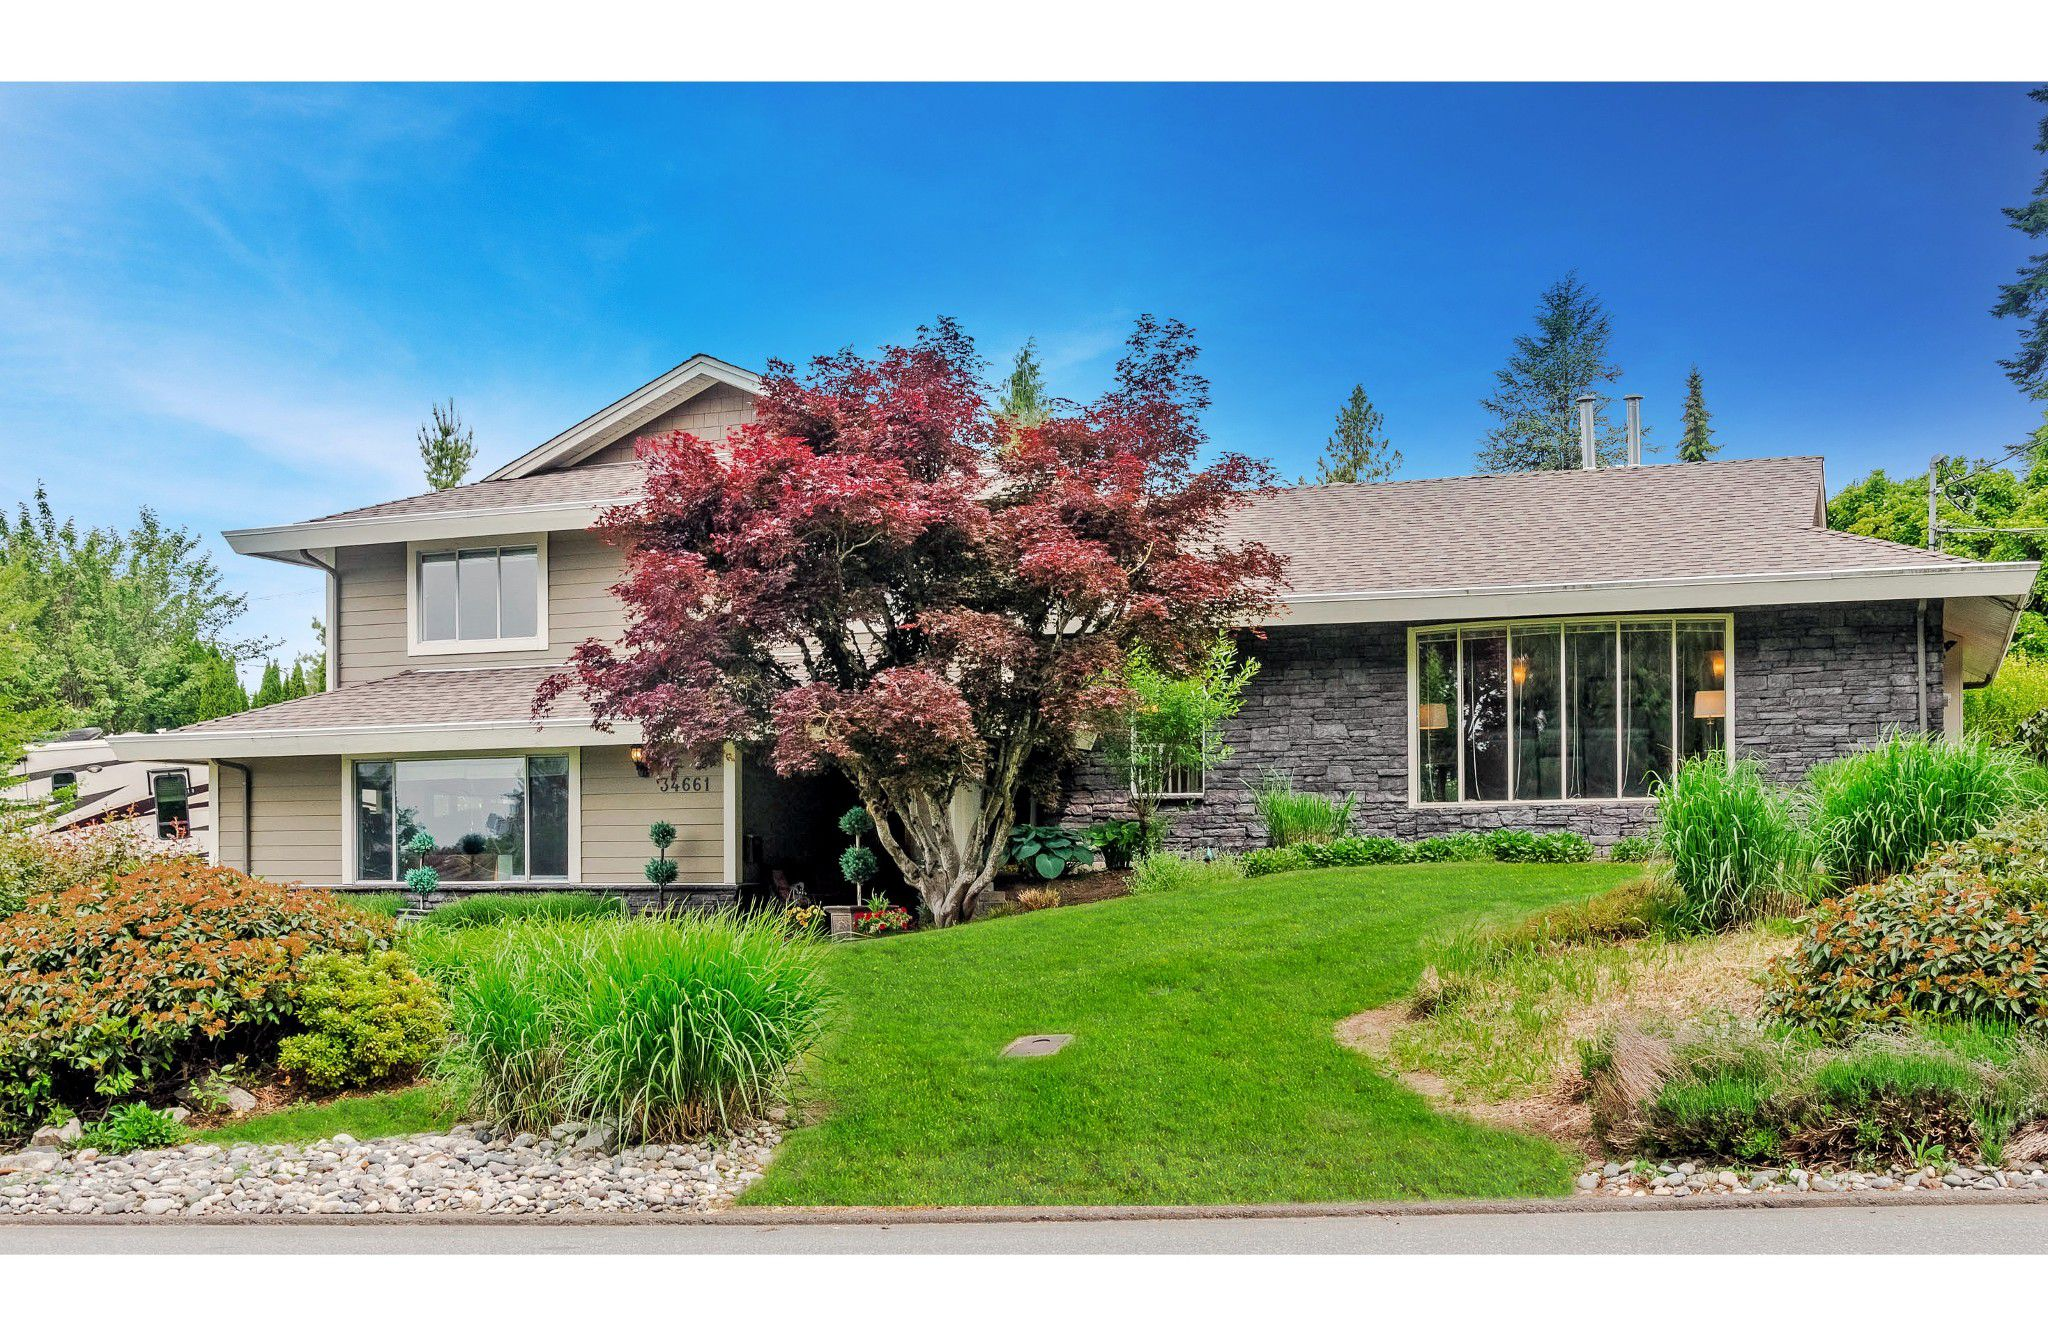 """Main Photo: 34661 WALKER Crescent in Abbotsford: Abbotsford East House for sale in """"Skyline"""" : MLS®# R2369860"""